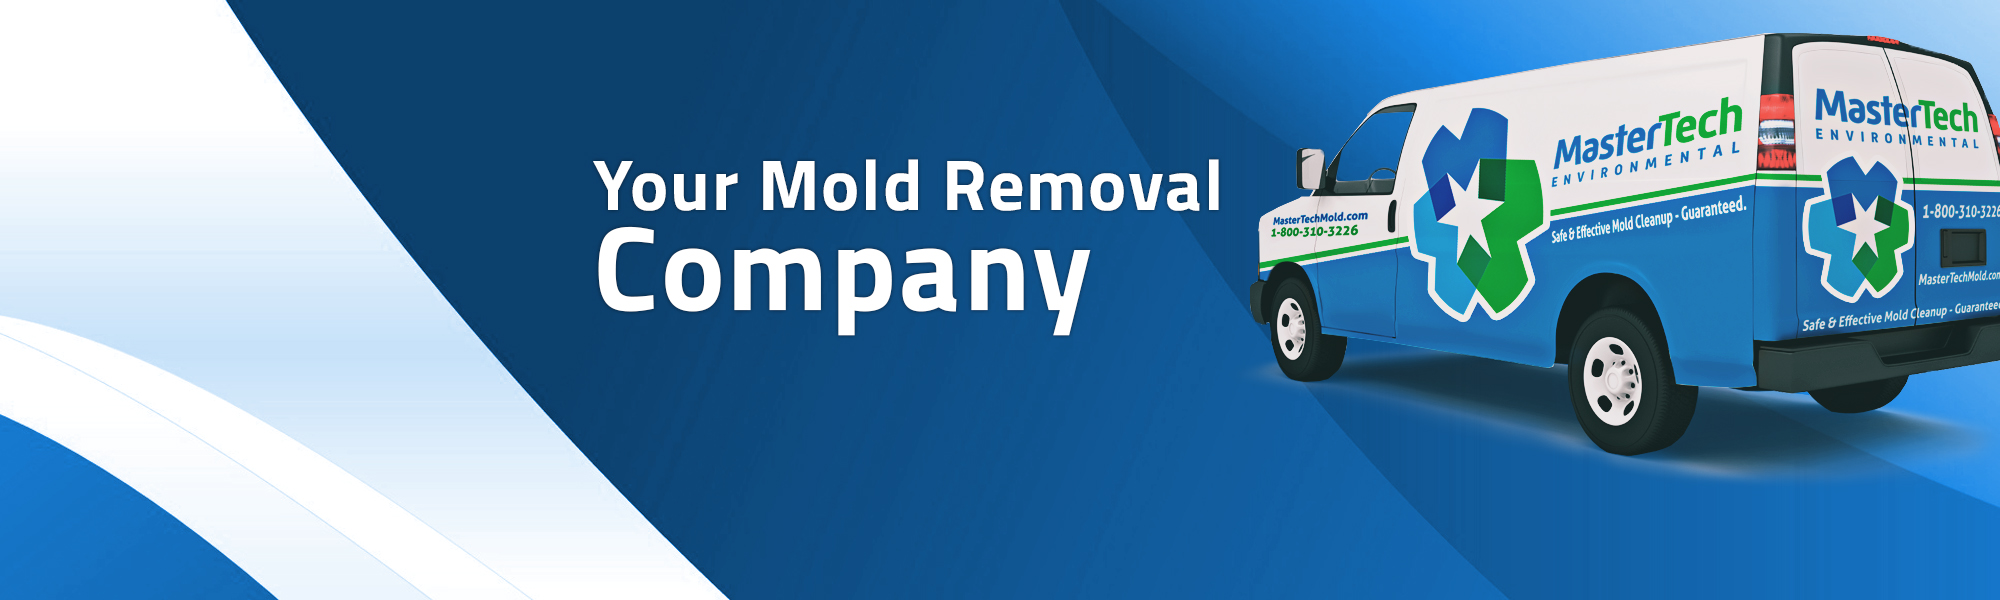 mold removal cumberland county nj